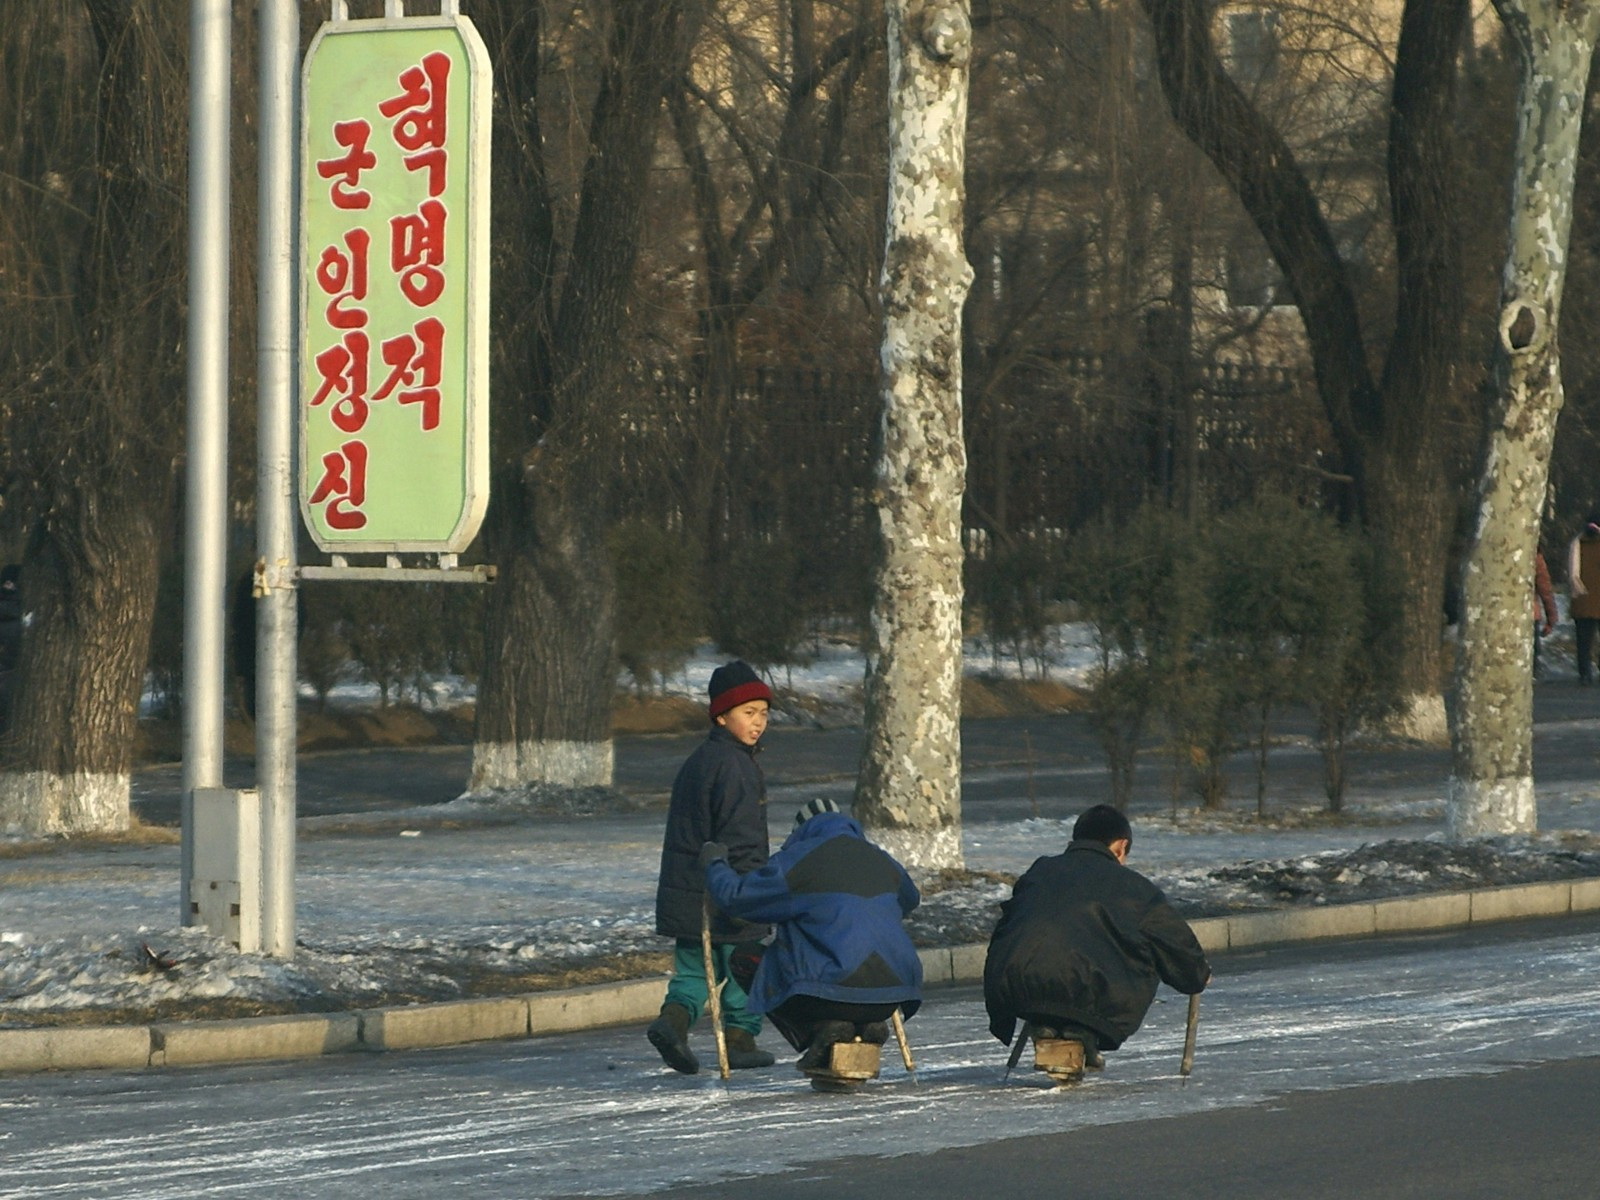 Ice-skating, DPRK style